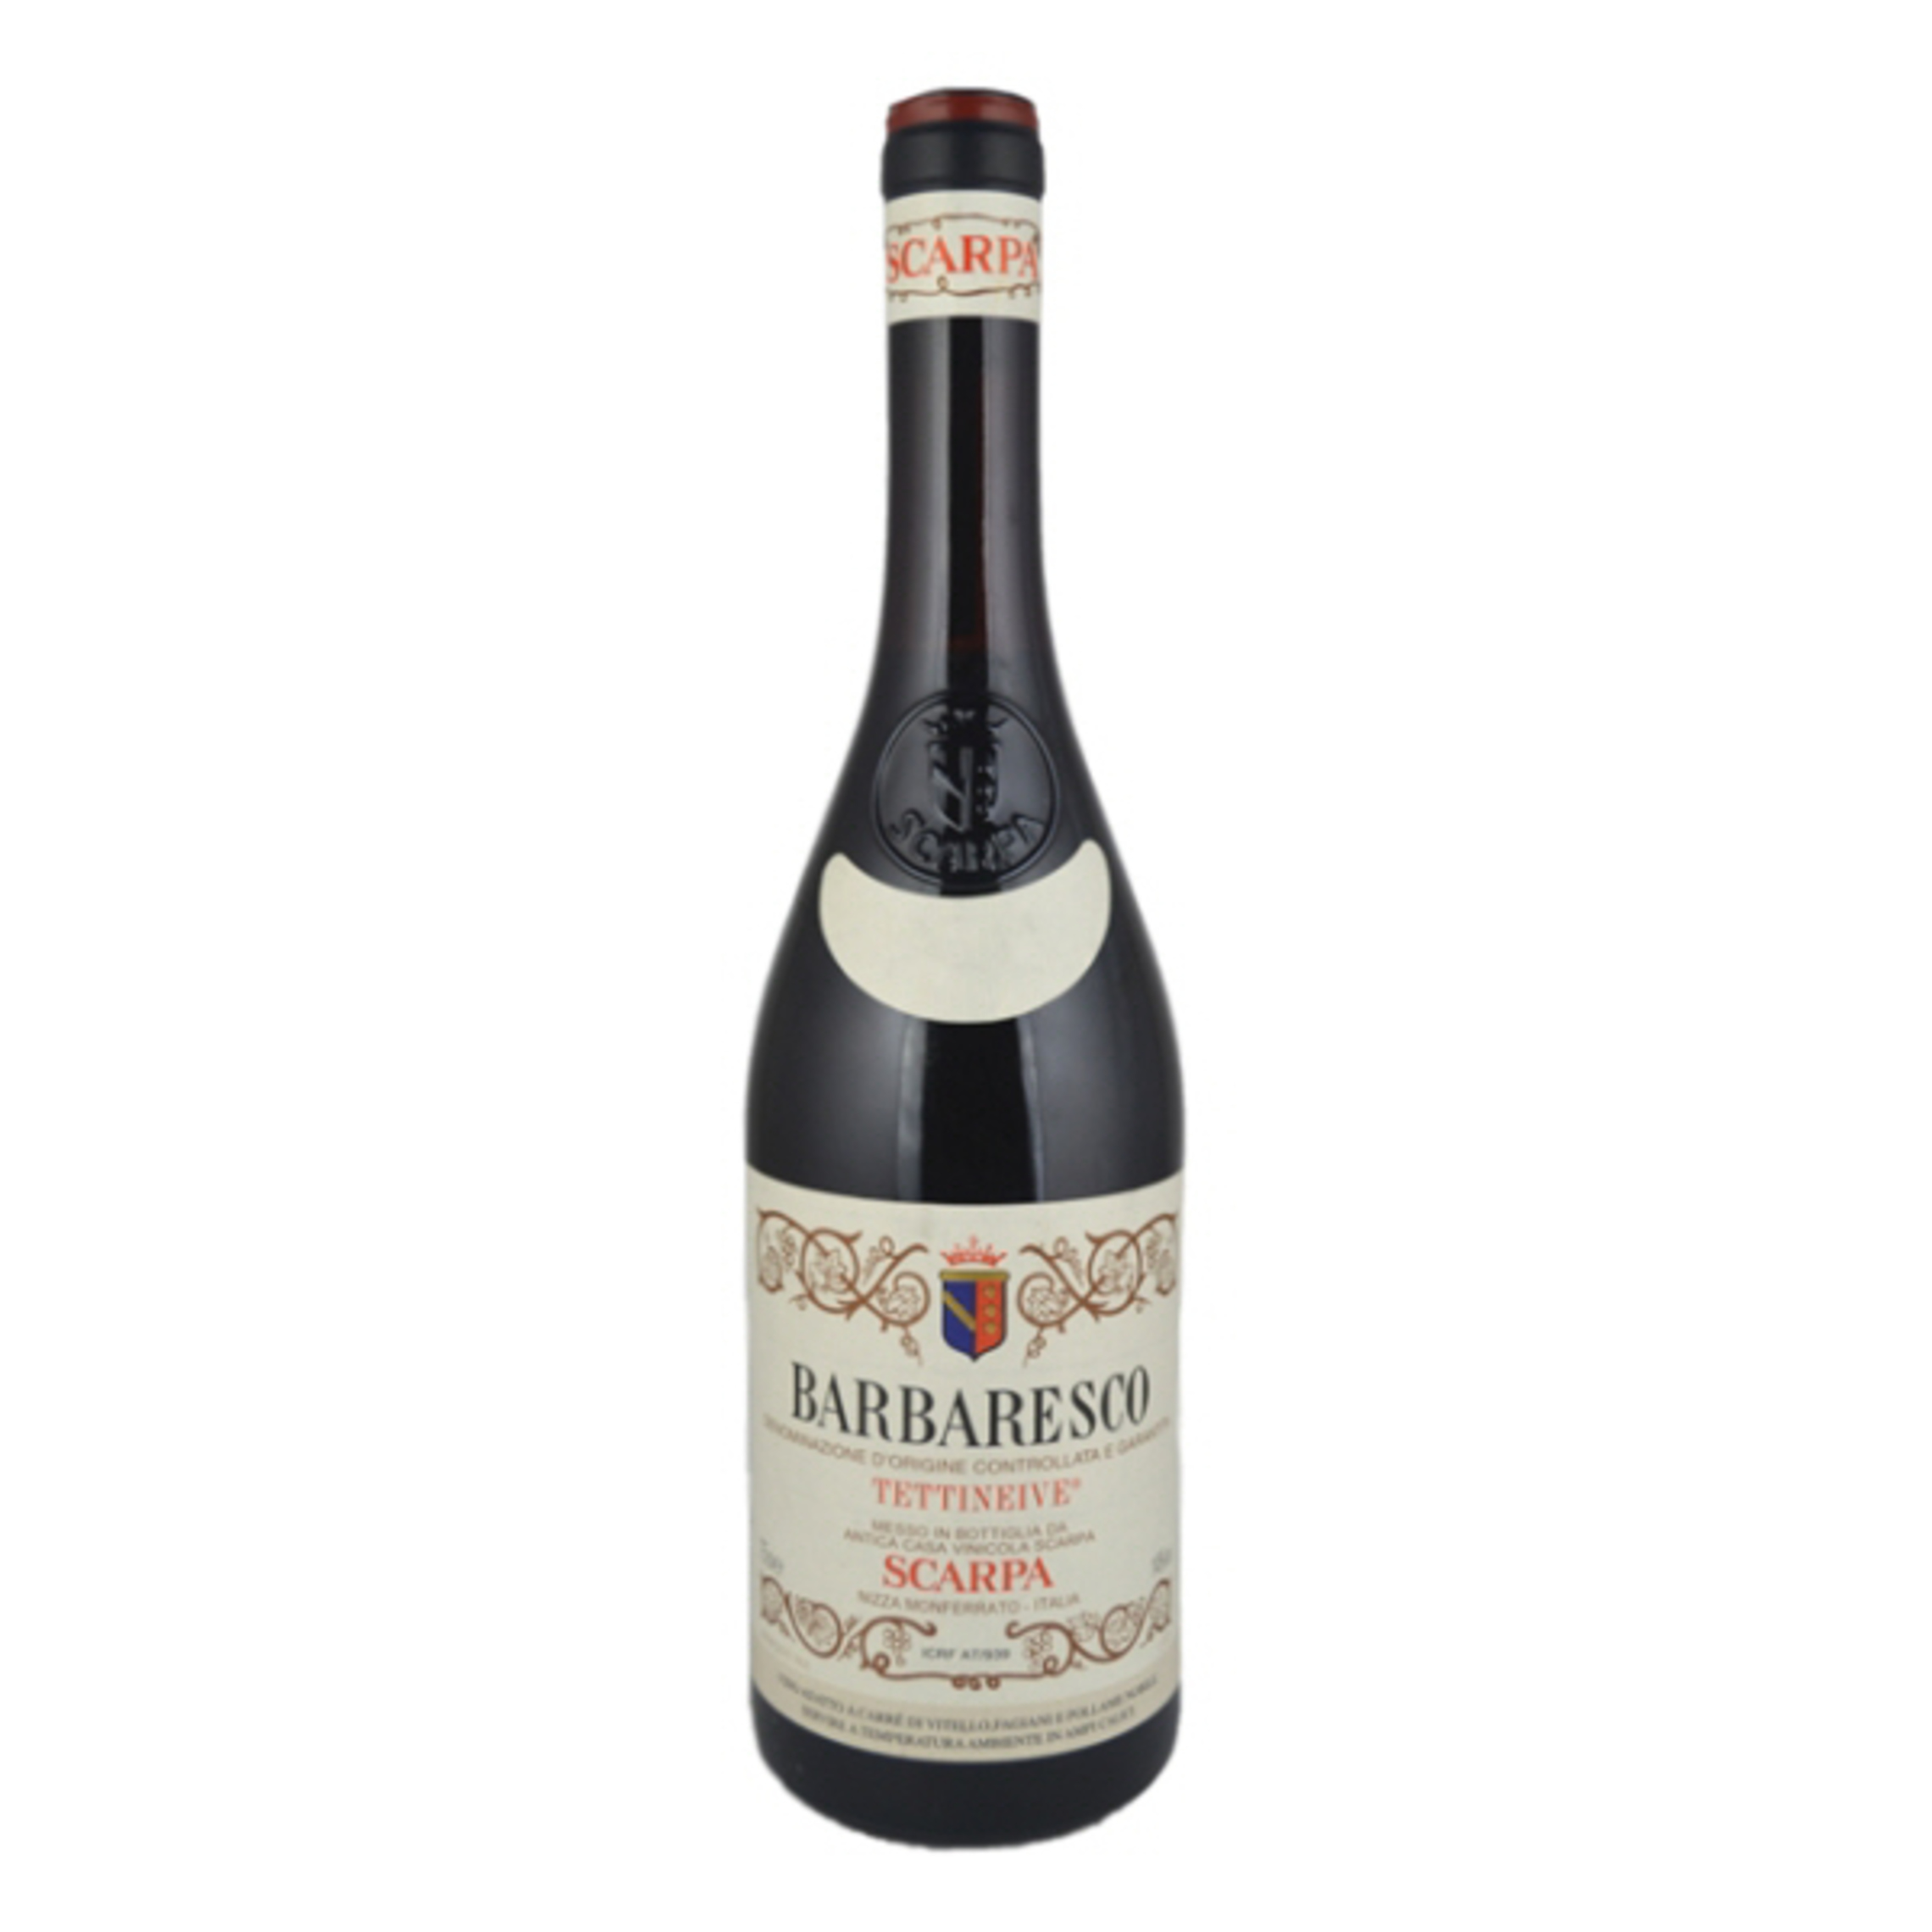 Barbaresco Tettineive 1989